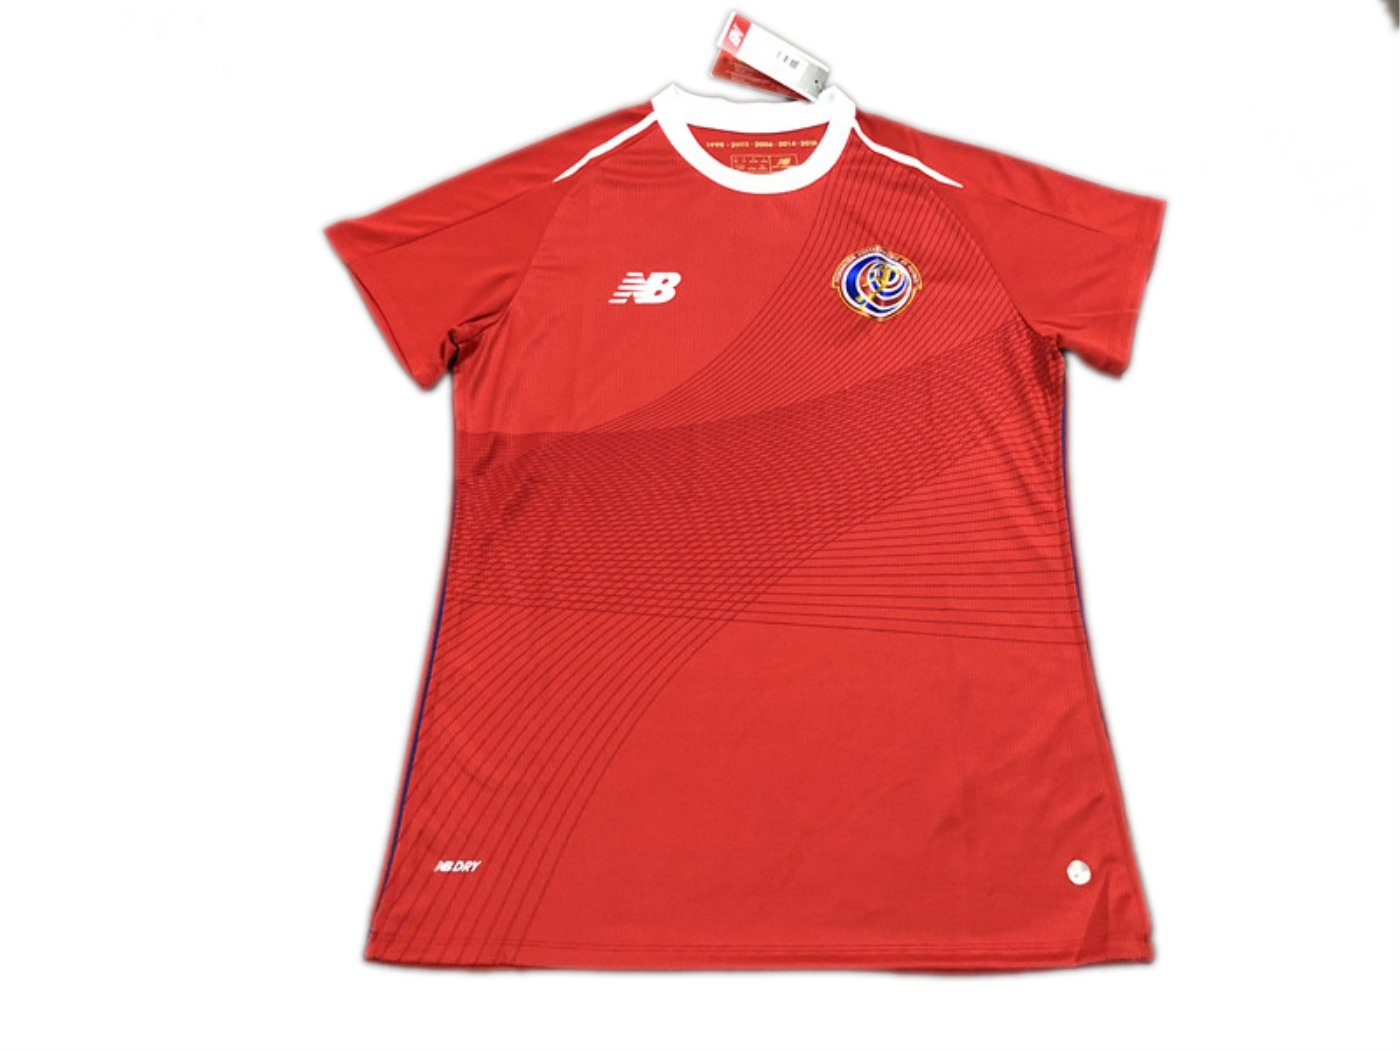 TI Soccer jersey Costa Rica home red women 2018 World Cup  Amazon.co.uk   Sports   Outdoors 1c1bcccc9